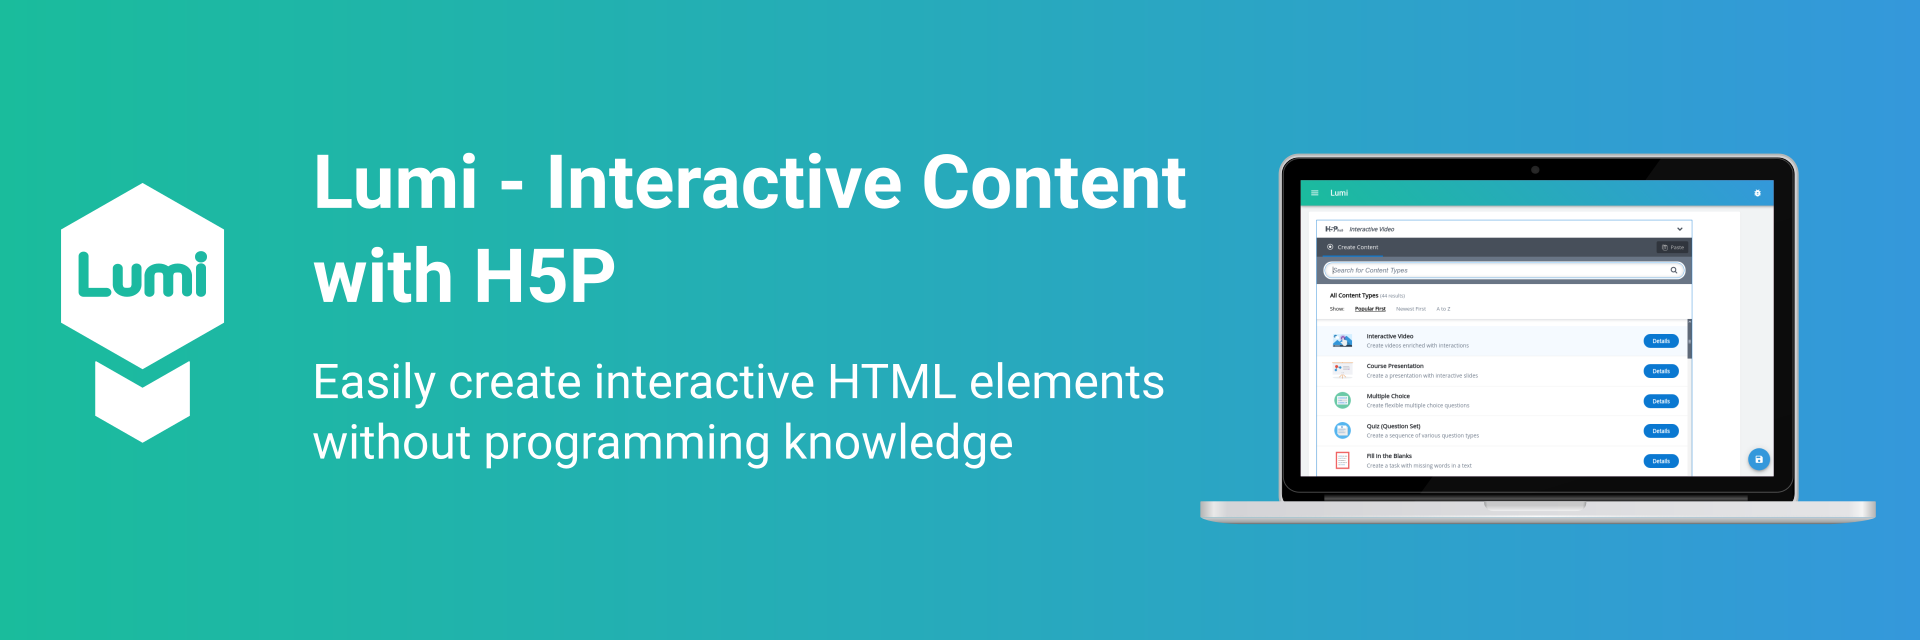 Lumi - Interactive Content with H5P banner